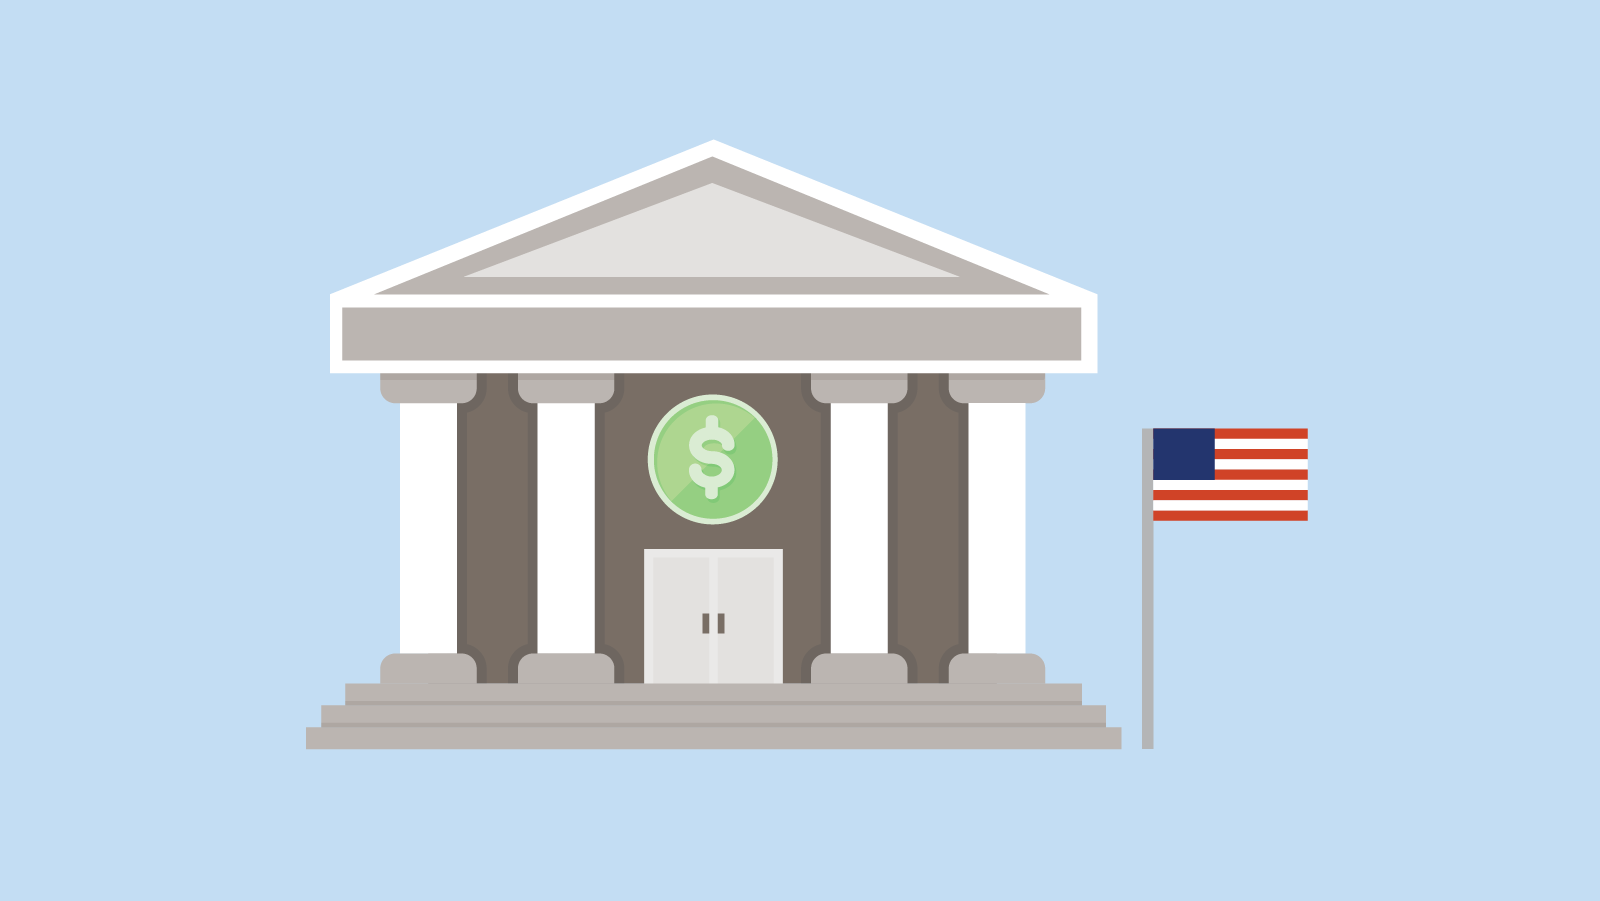 stately columned building with a dollar sign over the door and flag at full mast